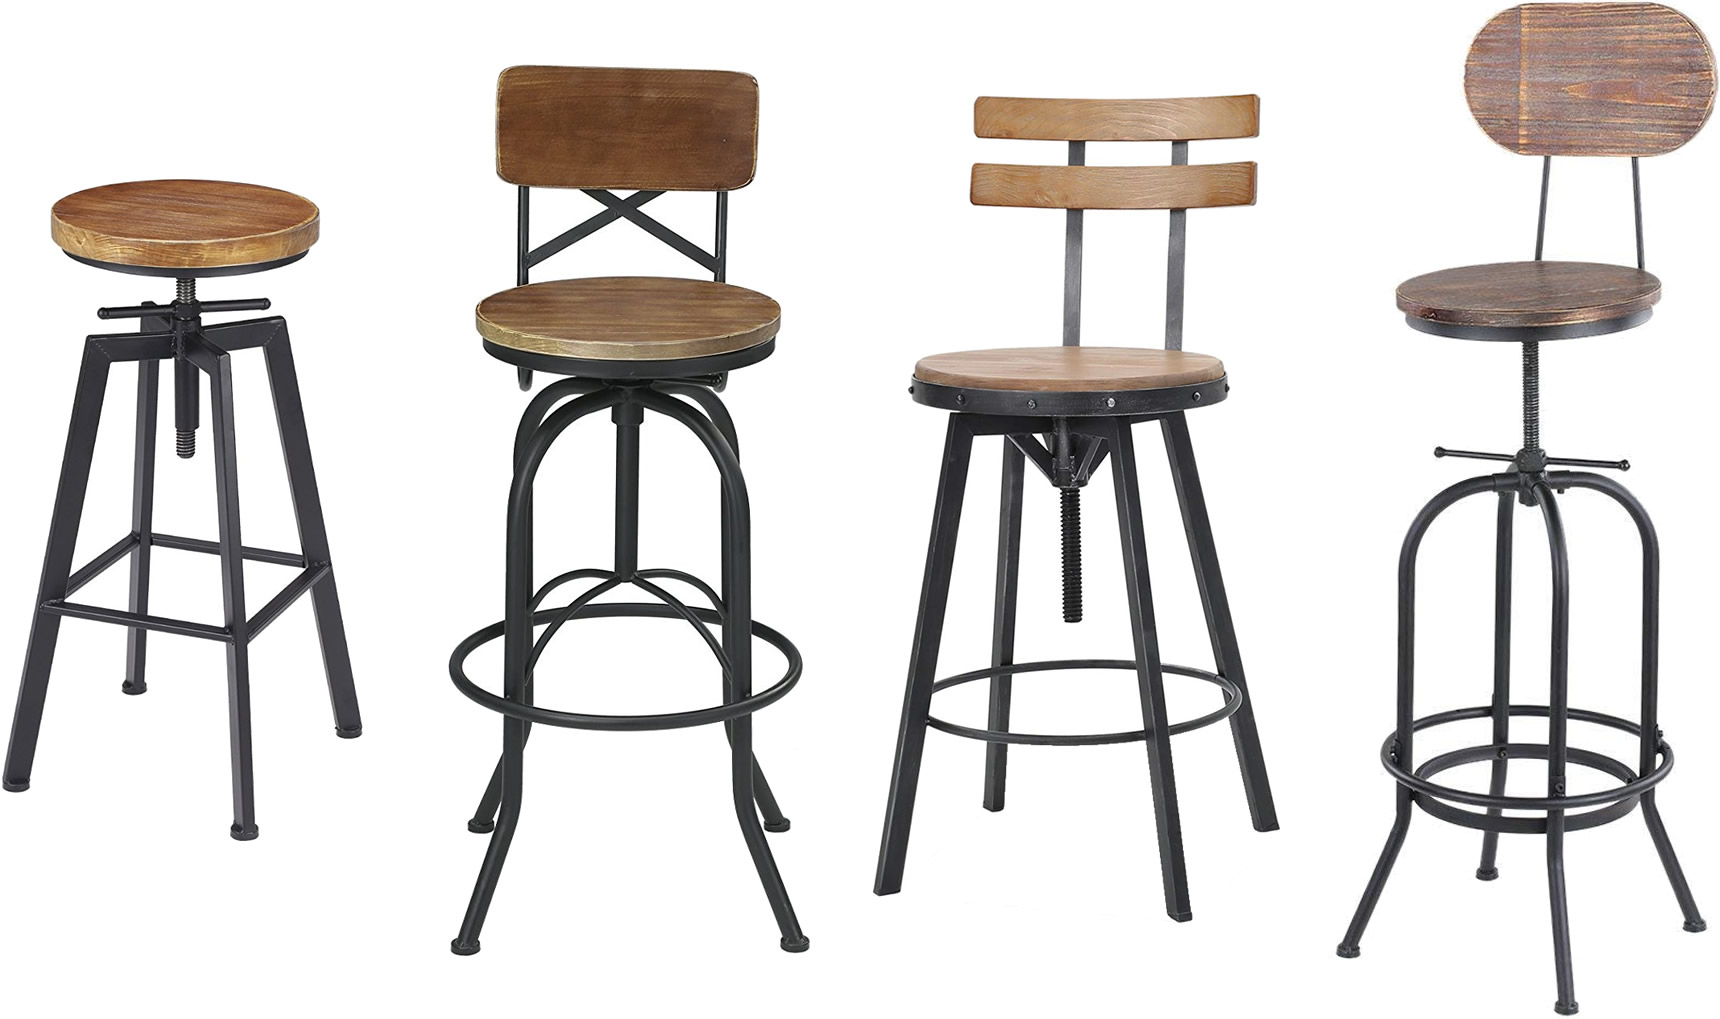 Industrial Design Bar Stools My Design42 Lighting And Design